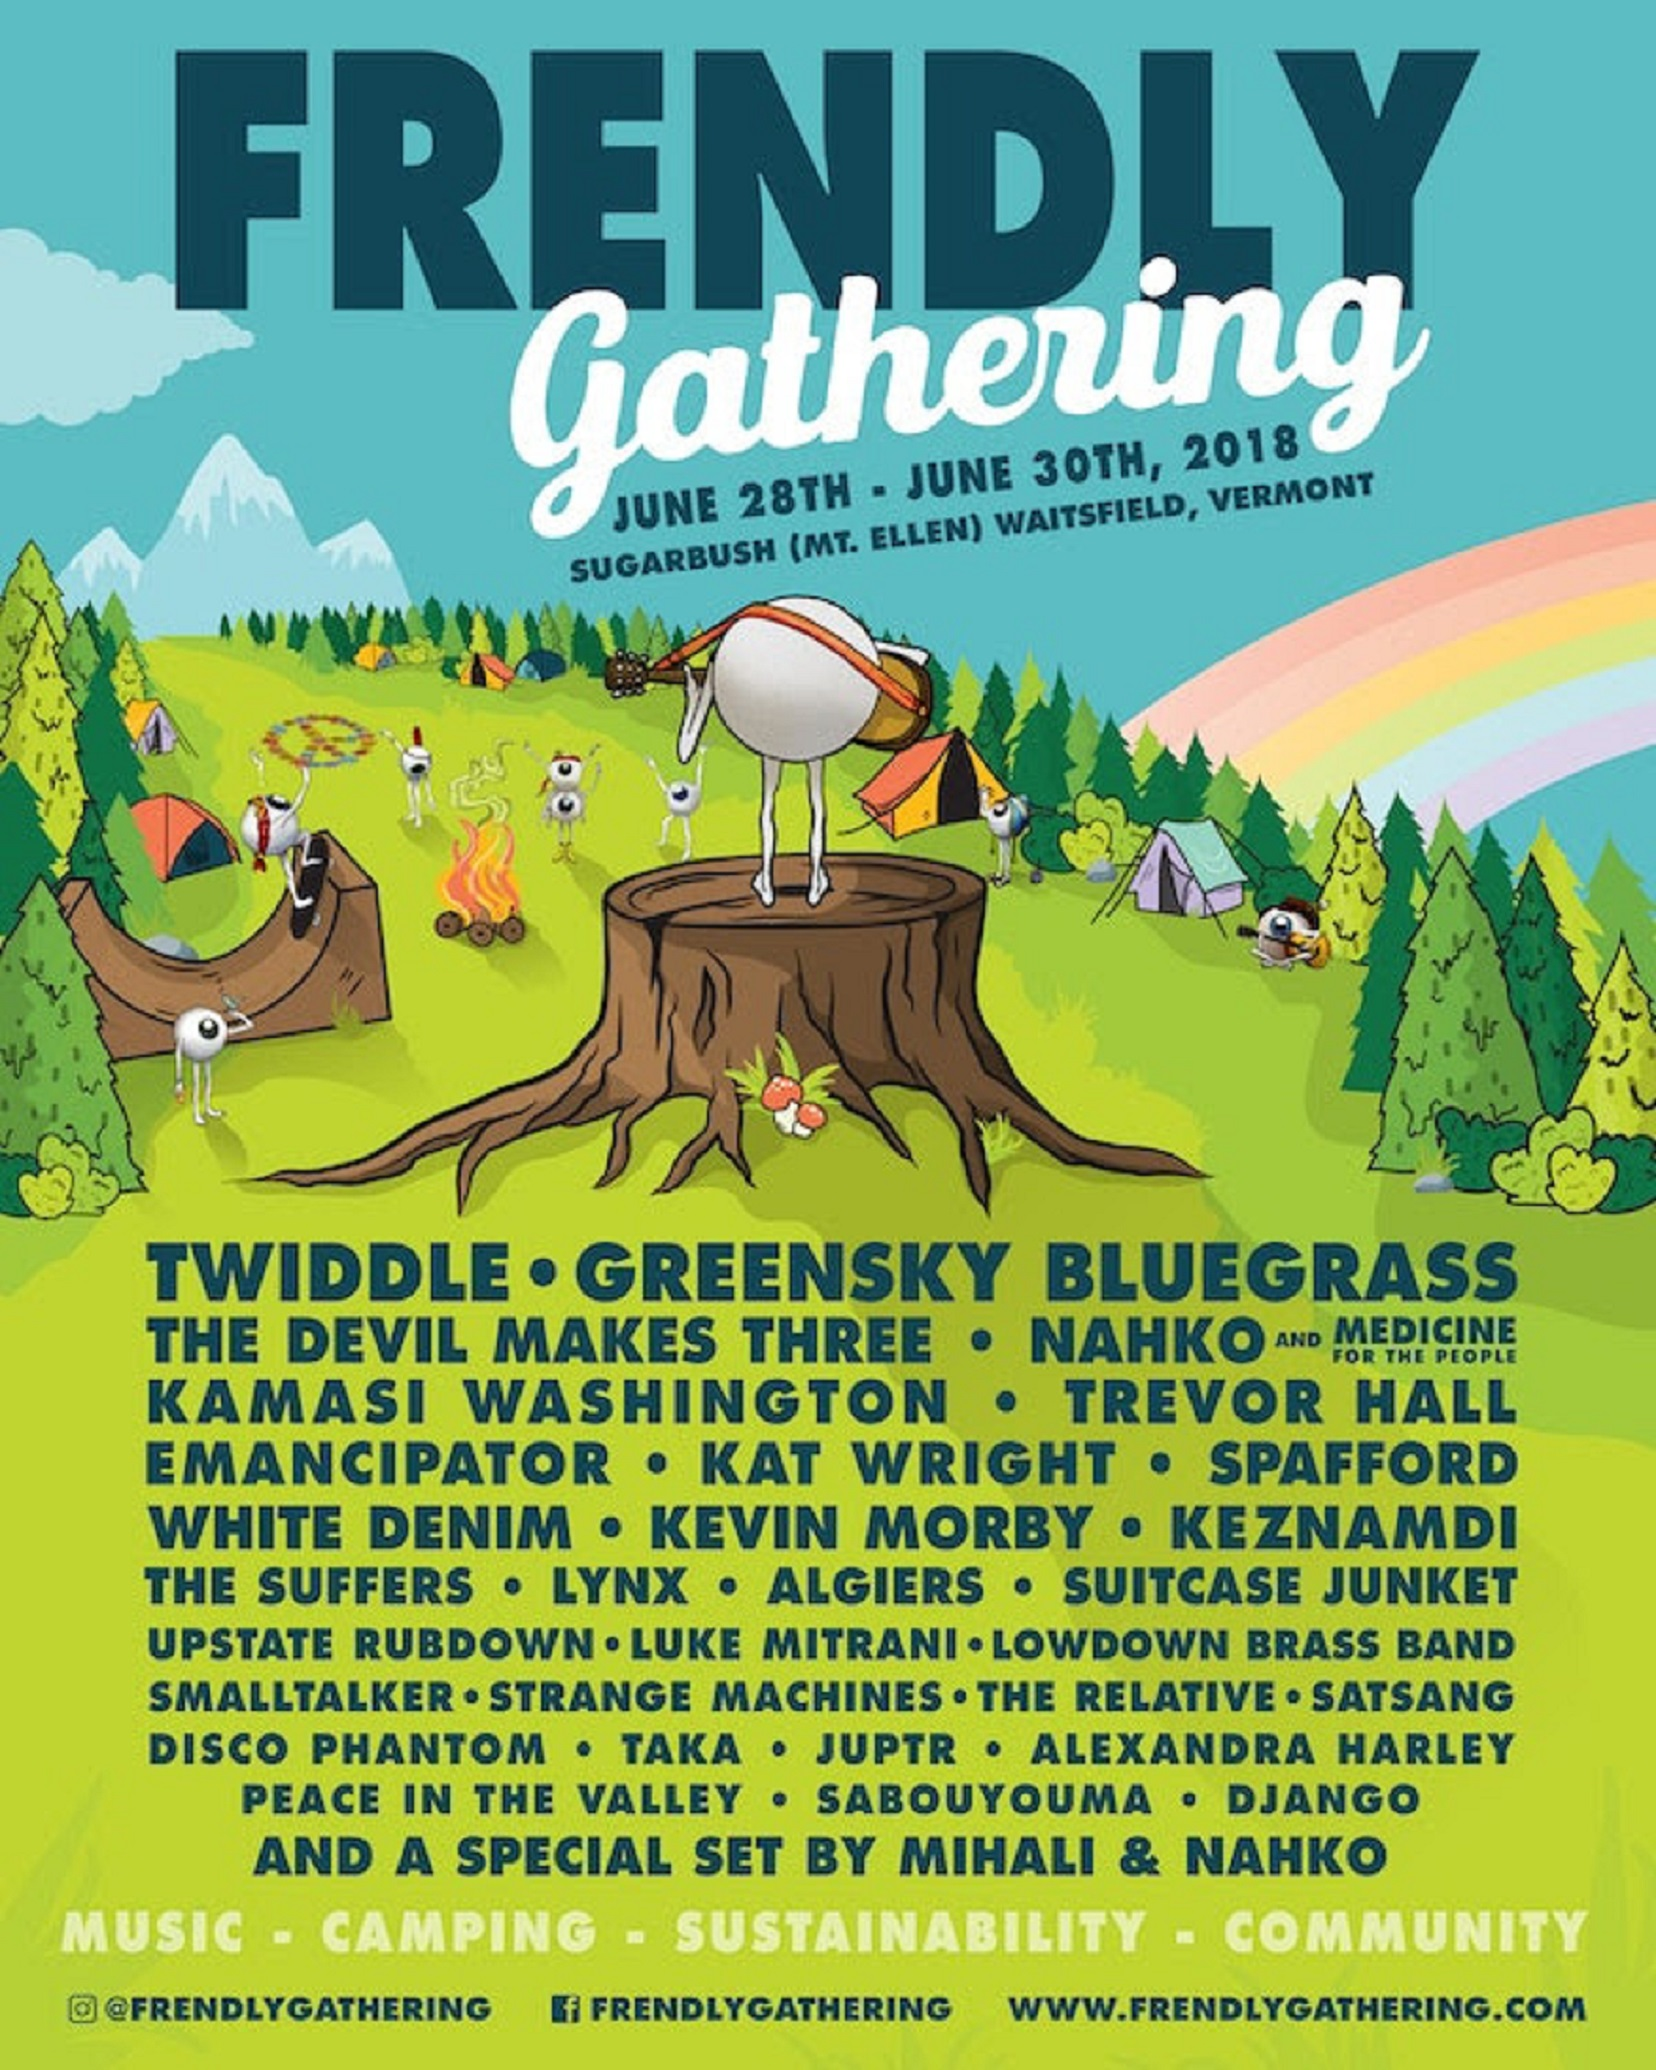 Frendly Gathering Announces 2018 Lineup